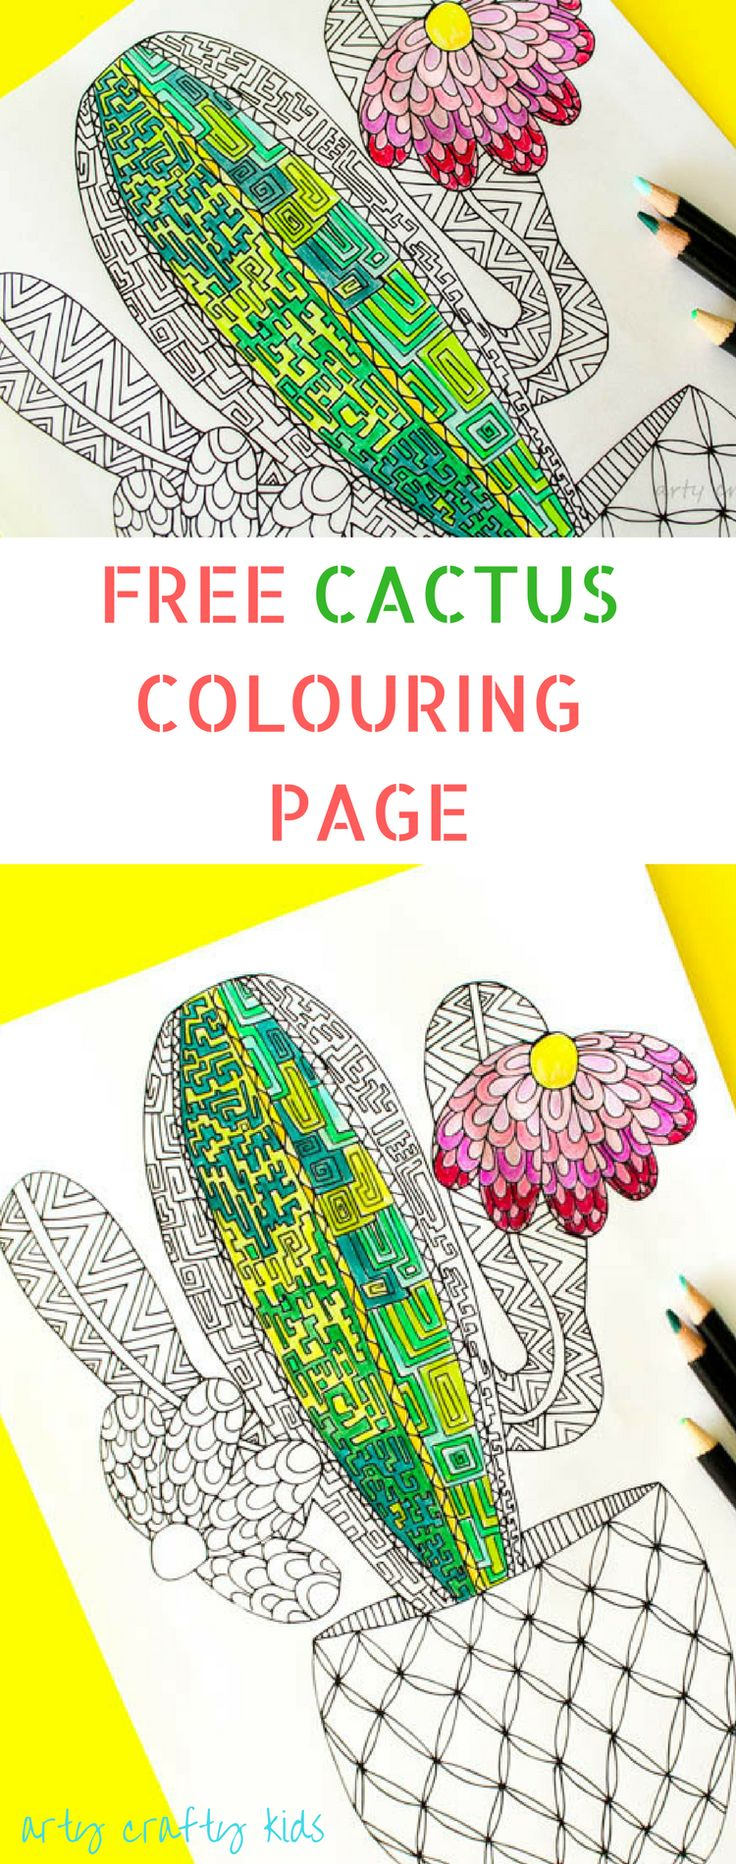 The zoology coloring book - Arty Crafty Kids Coloring Pages Cactus Coloring Page A Free Cactus Coloring Page